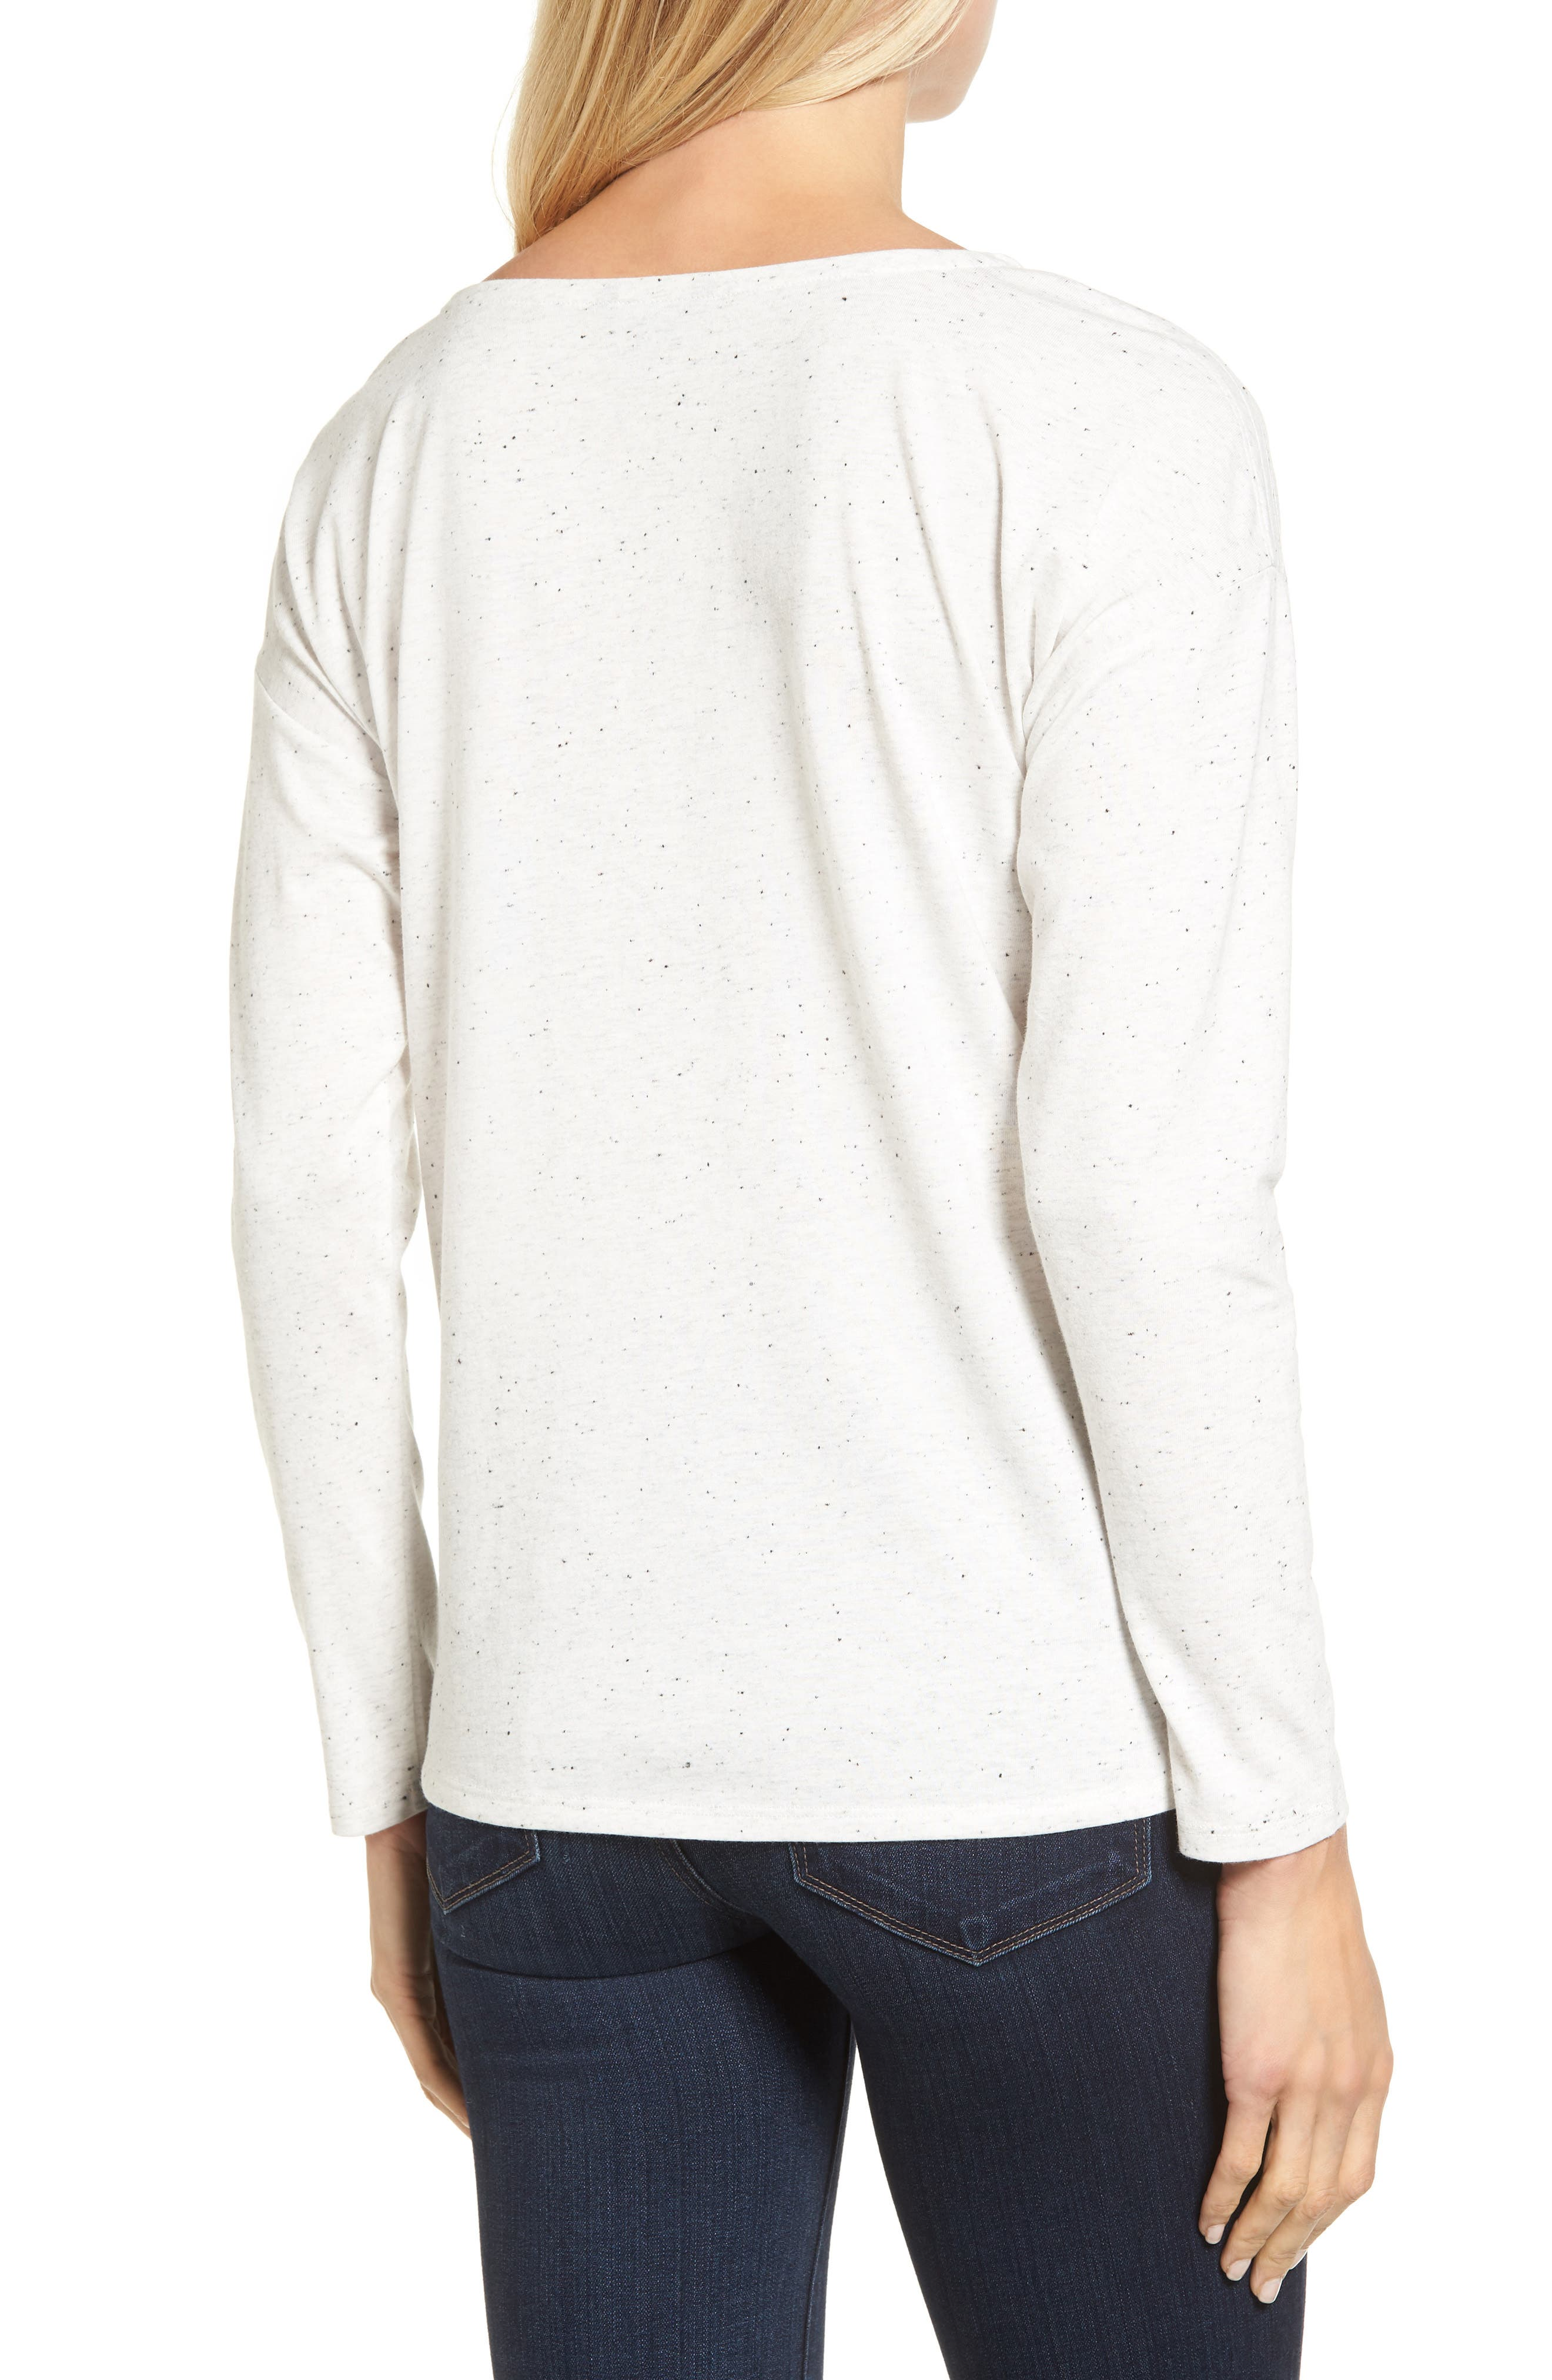 Alternate Image 2  - NIC+ZOE Salt & Pepper Long Sleeve Top